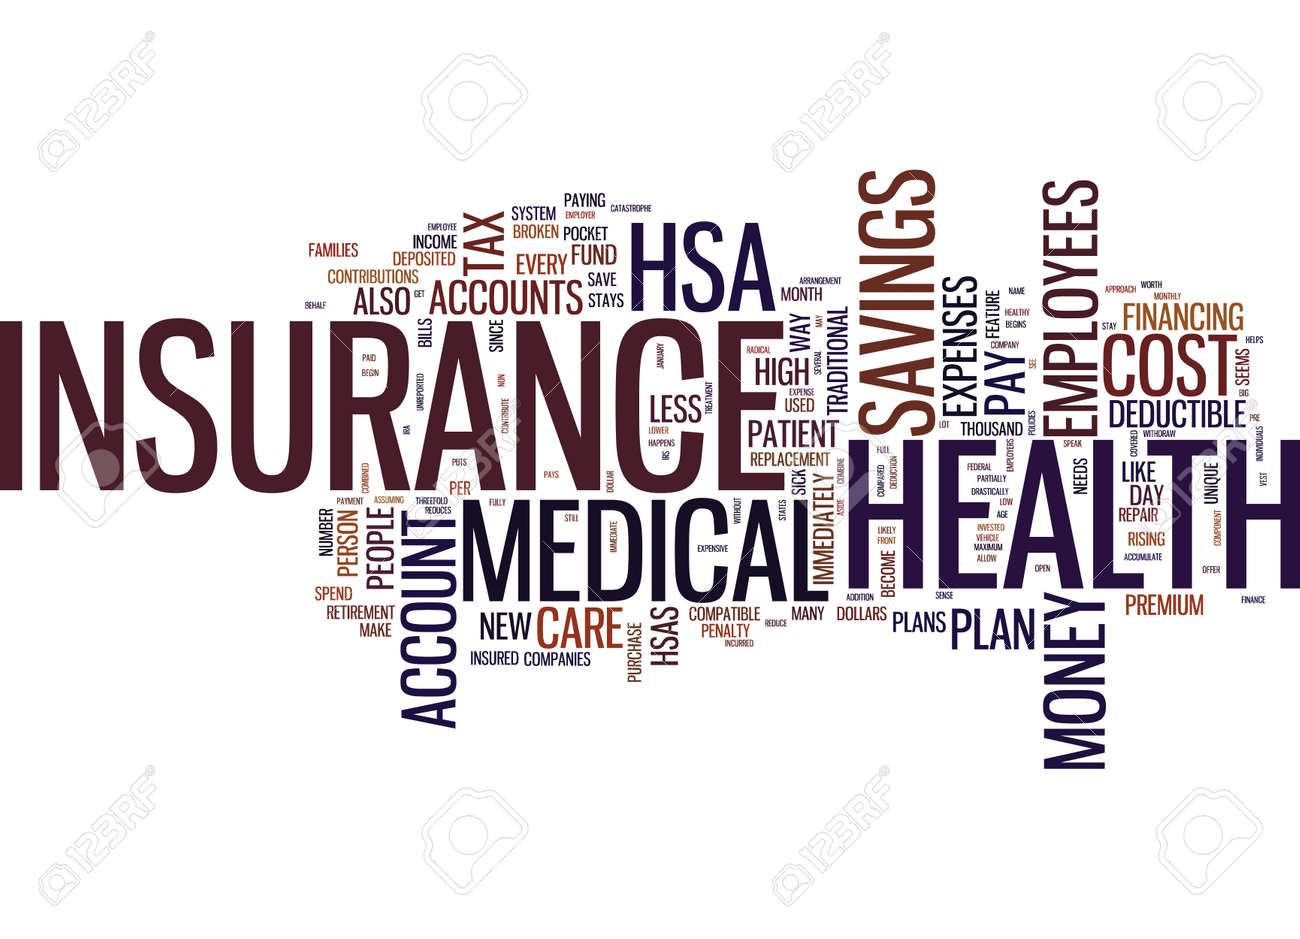 THE NEW WAY TO LOWER THE COST OF HEALTH INSURANCE Text Background Word Cloud Concept - 82593476